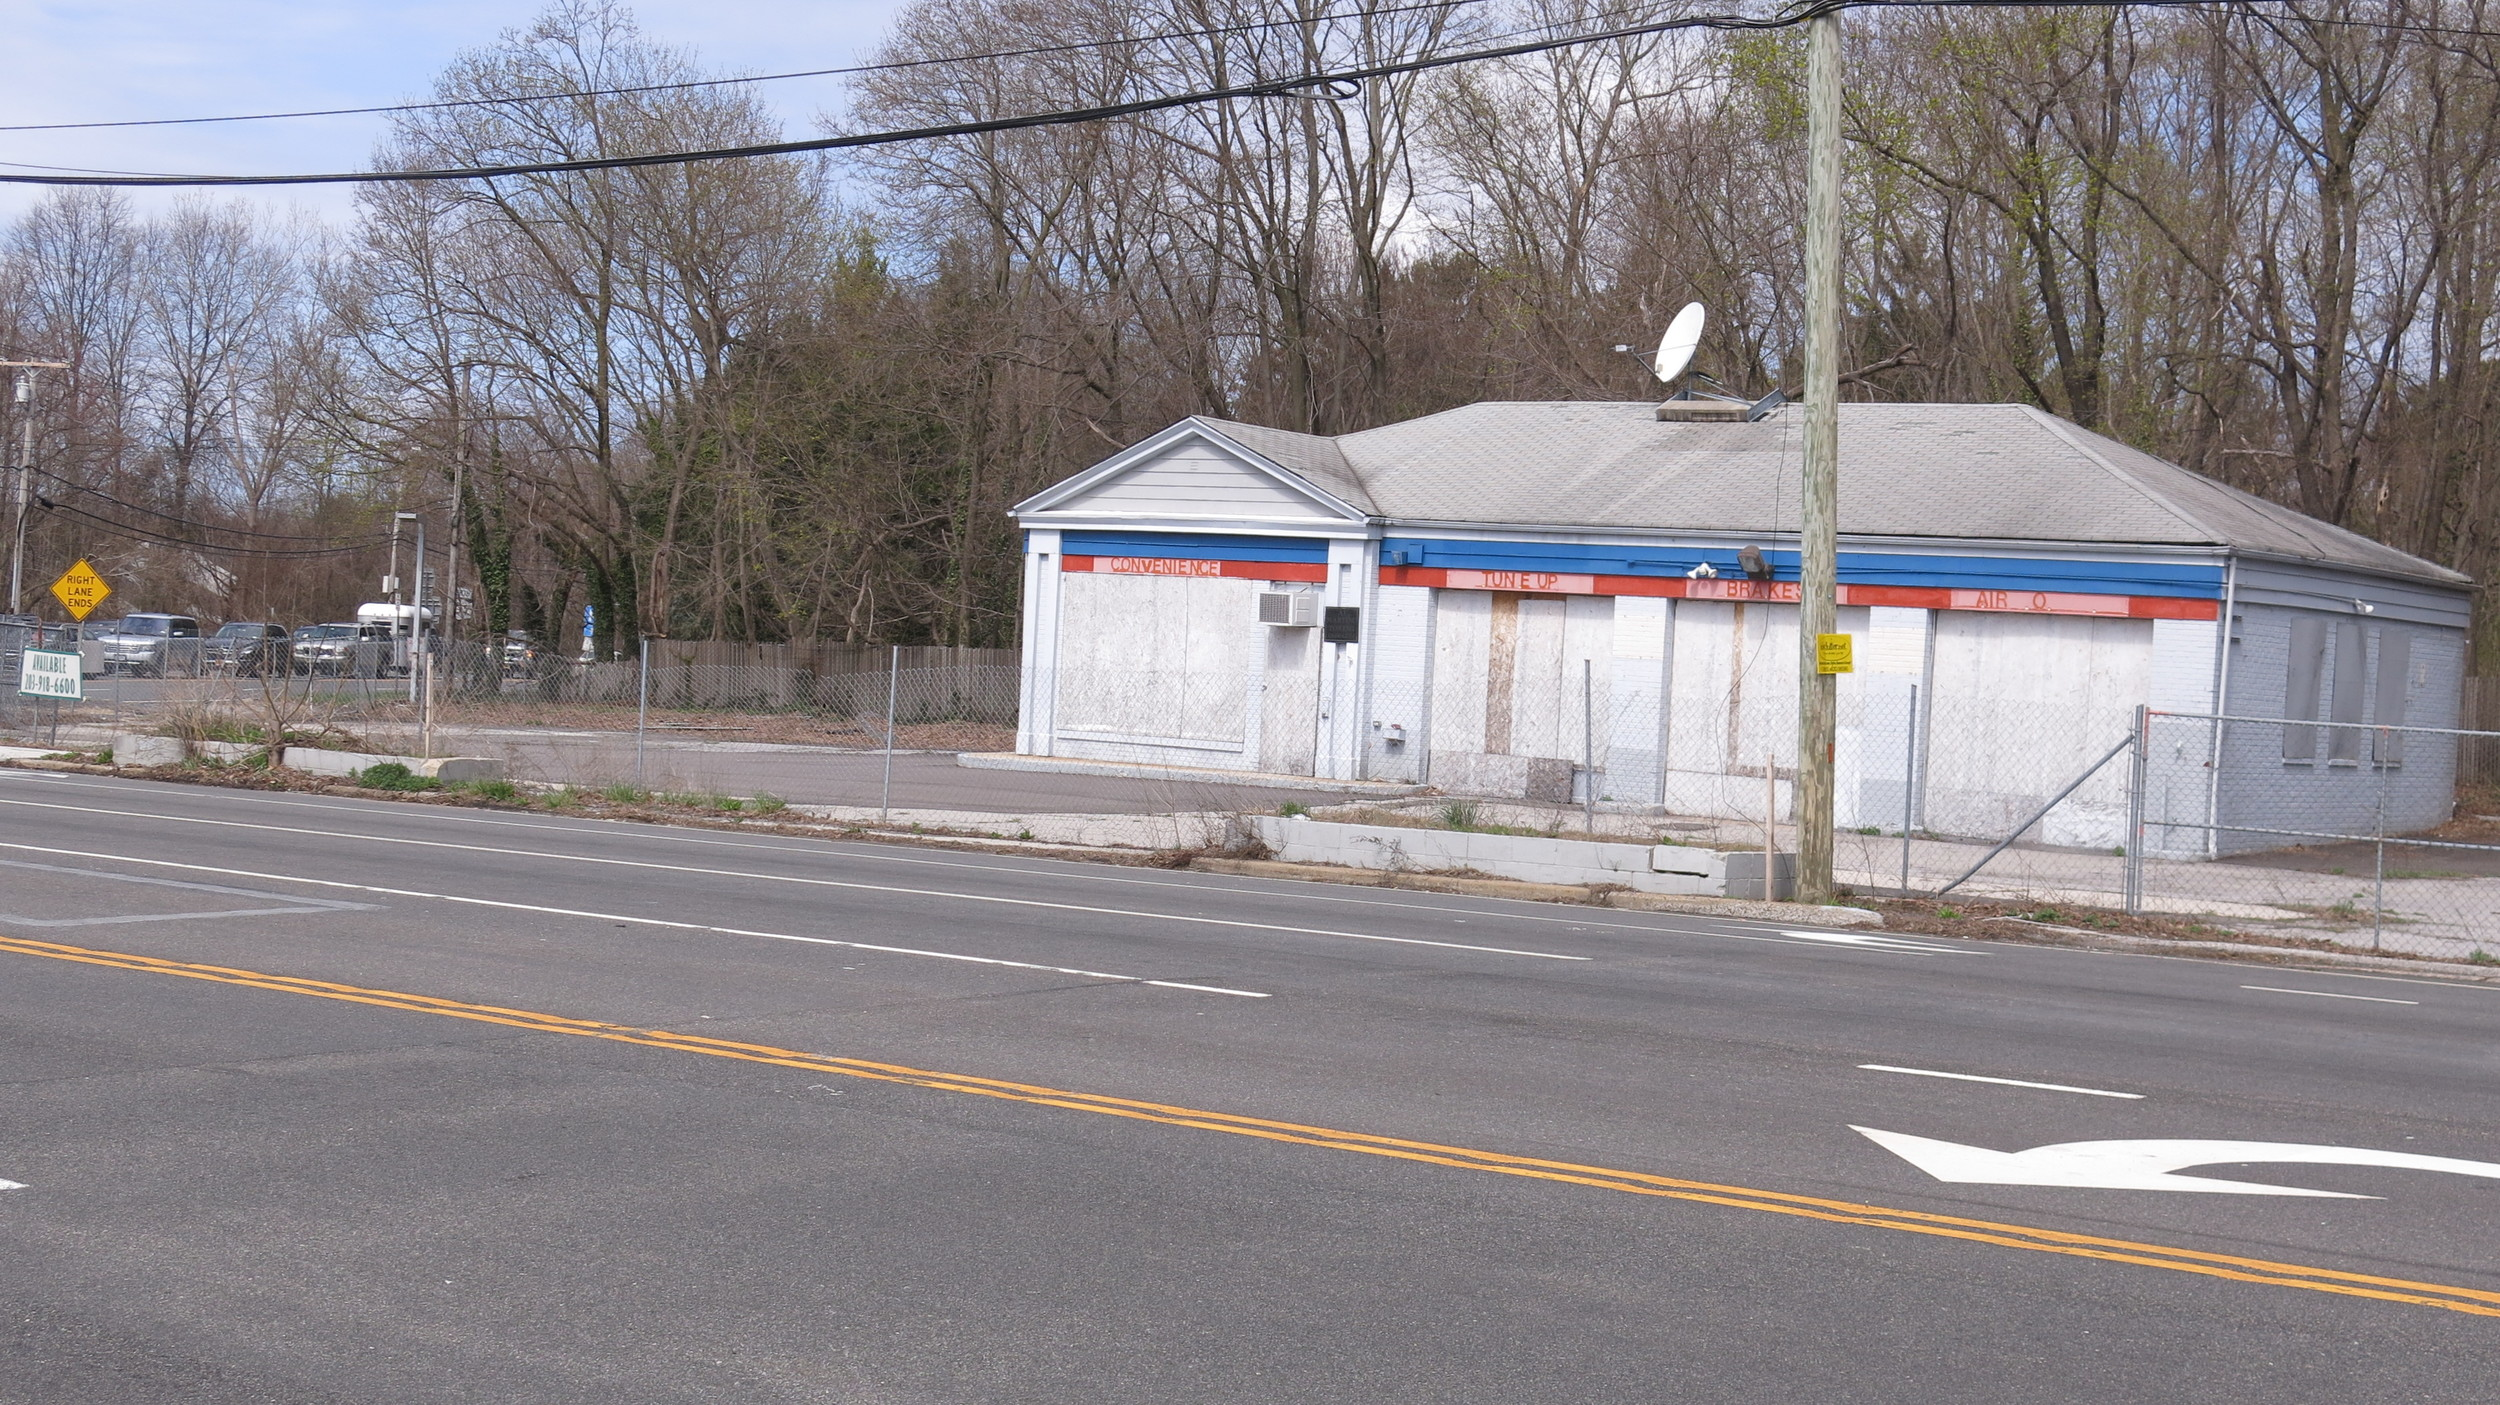 People are worried that the abandoned gas station on the corner of Route 25A and 107 may become a Starbucks.